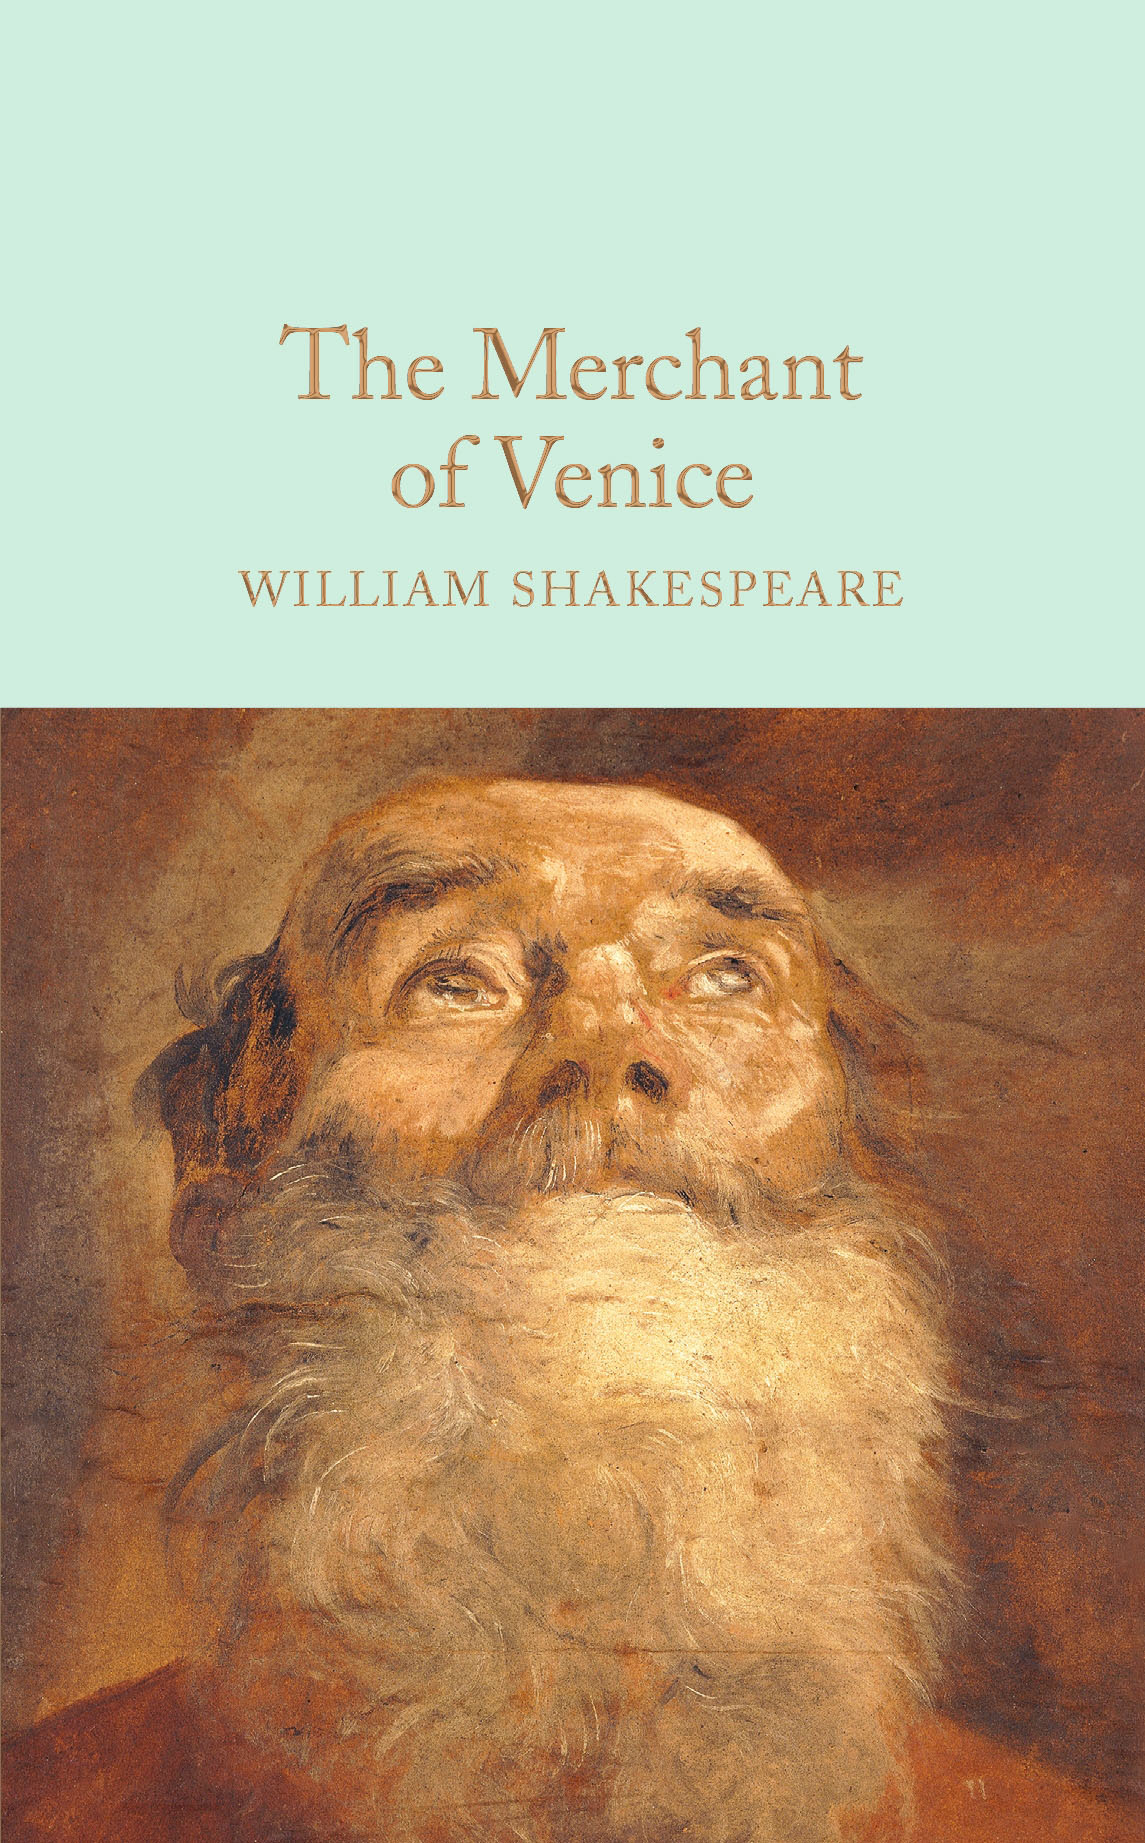 The Merchant of Venice the merchant of venice sicilian citruses туалетная вода 50 мл